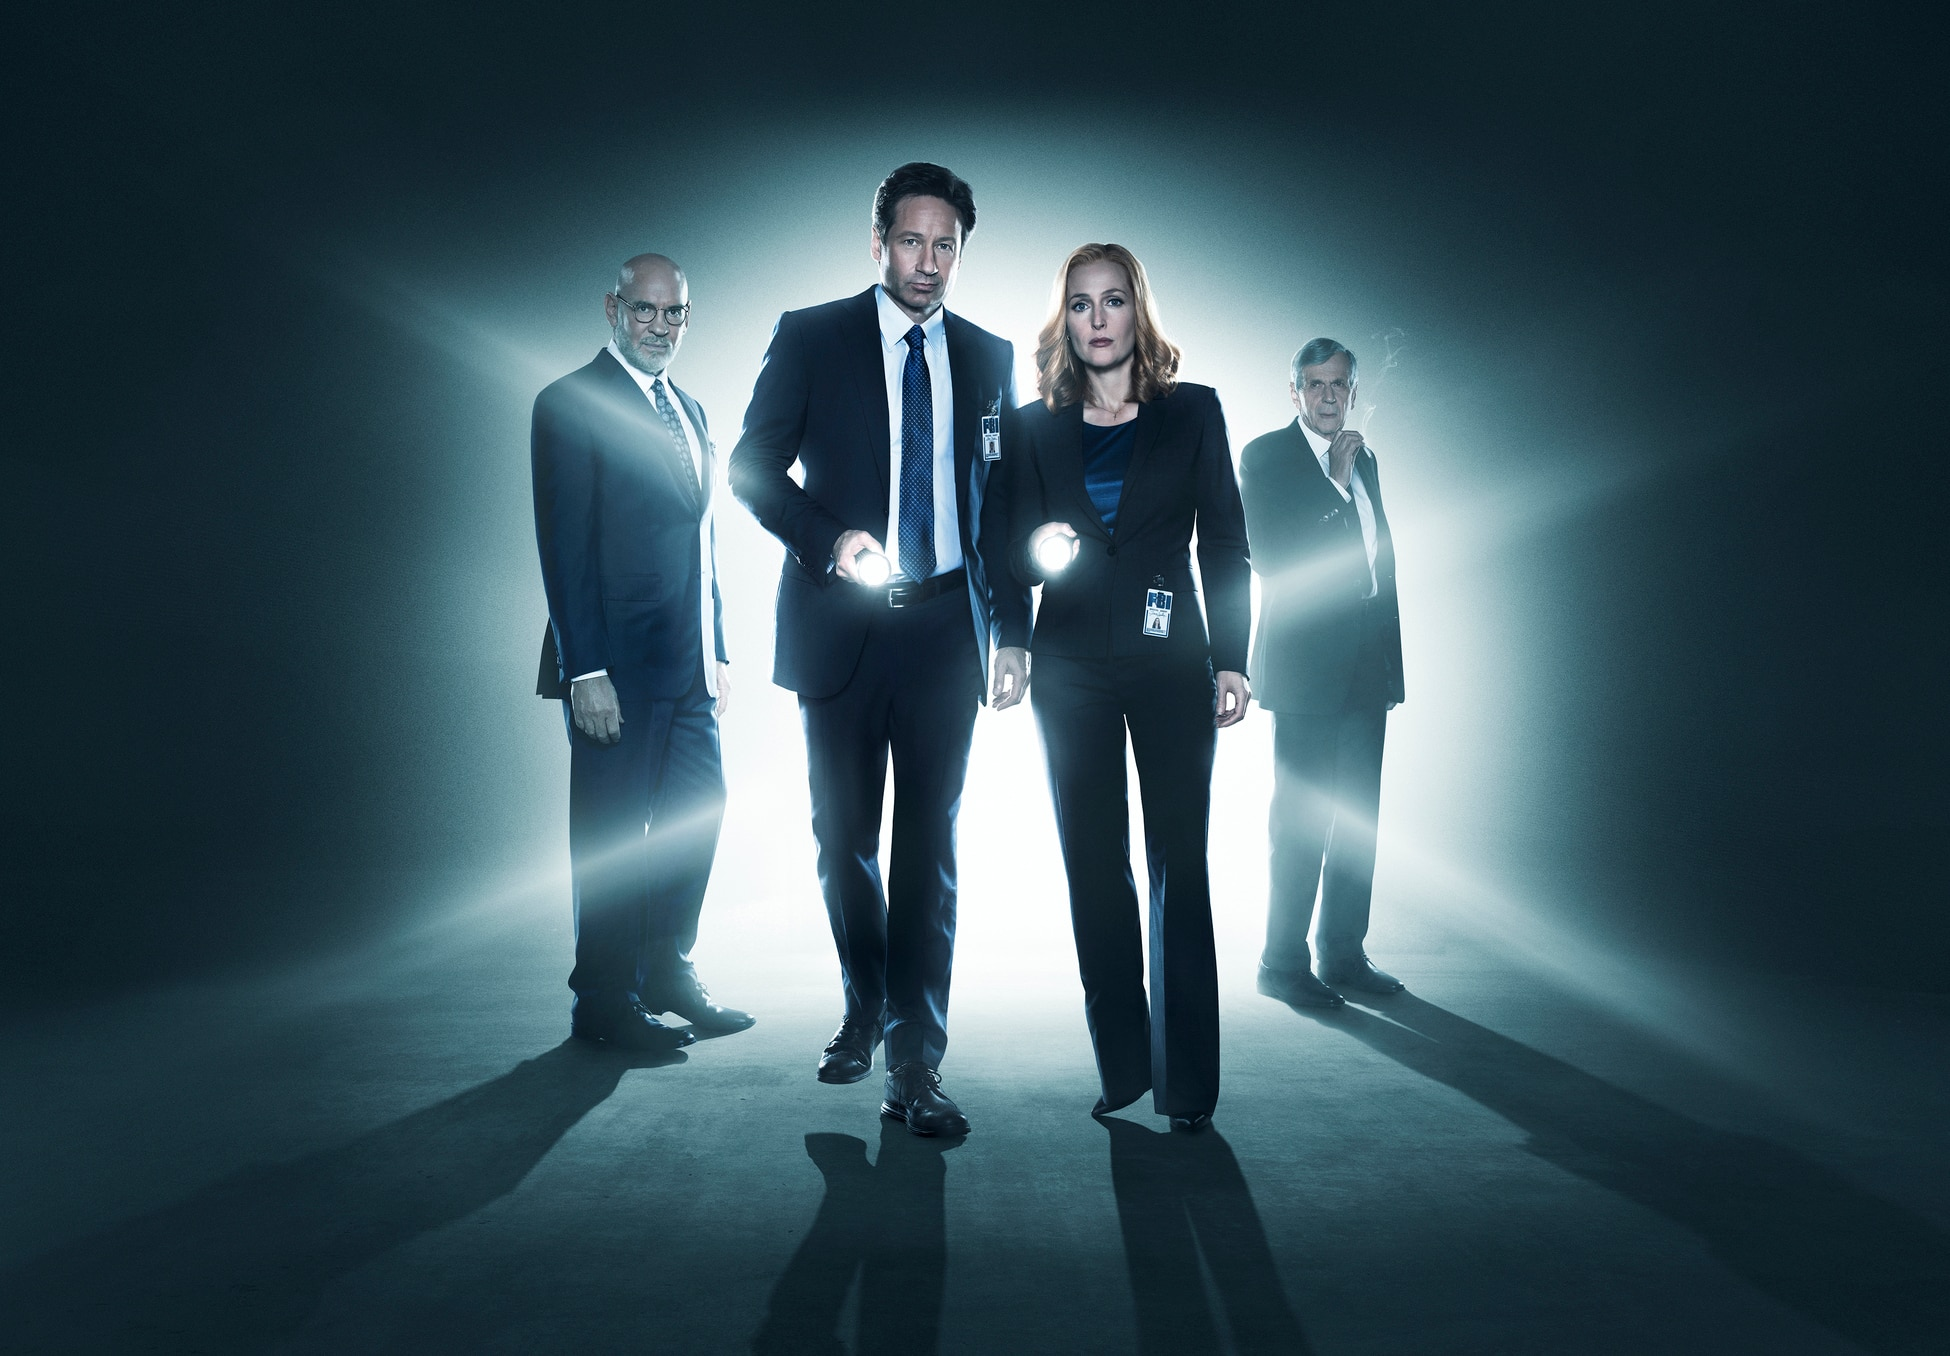 FIN05 XFiles PRShot final hires1 - More New Artwork Released for The X-Files